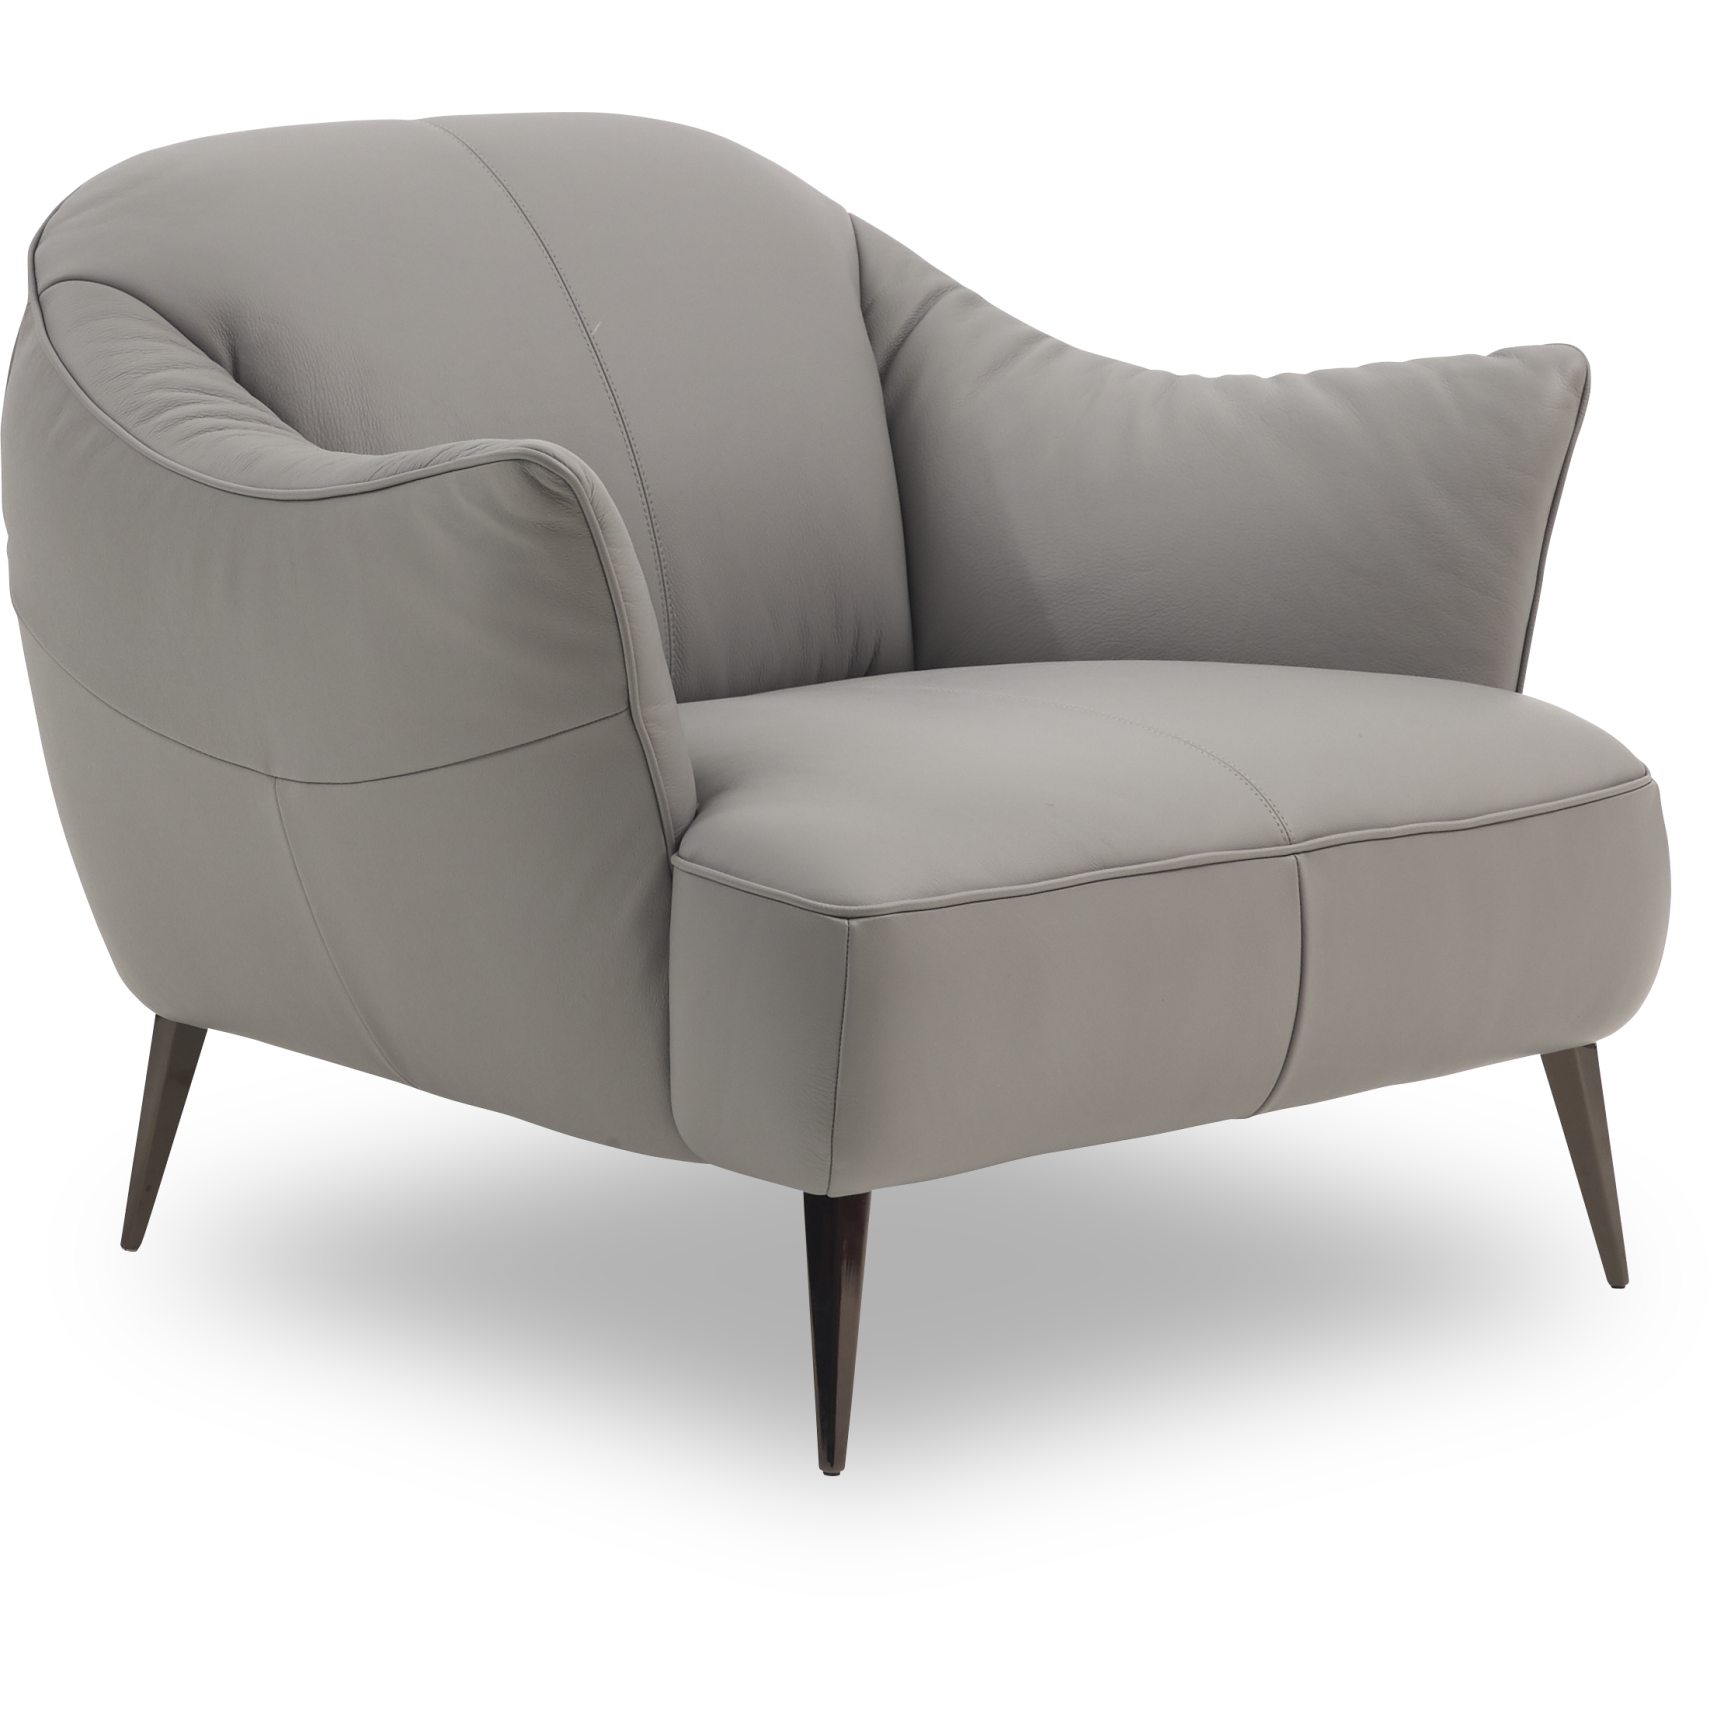 Natuzzi Editions C120 003 Lænestol - Pasadena Light Grey læder og ben i sort krom